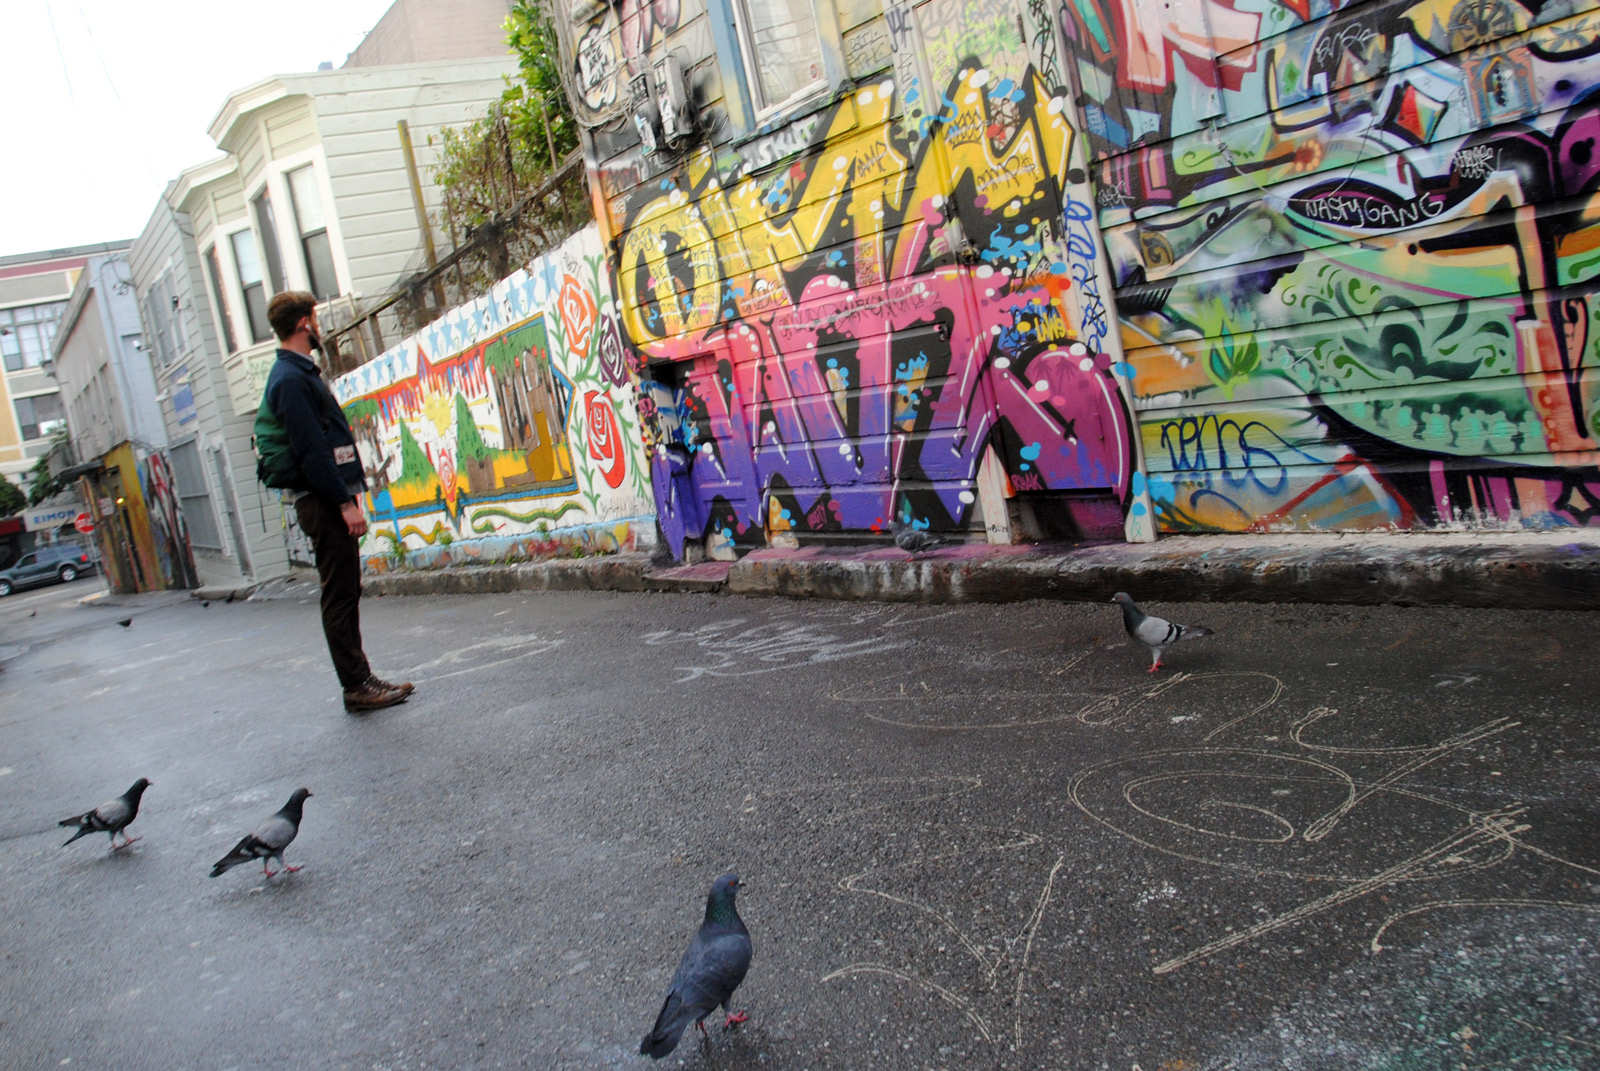 Image shows a man and some pigeons facing a mural.